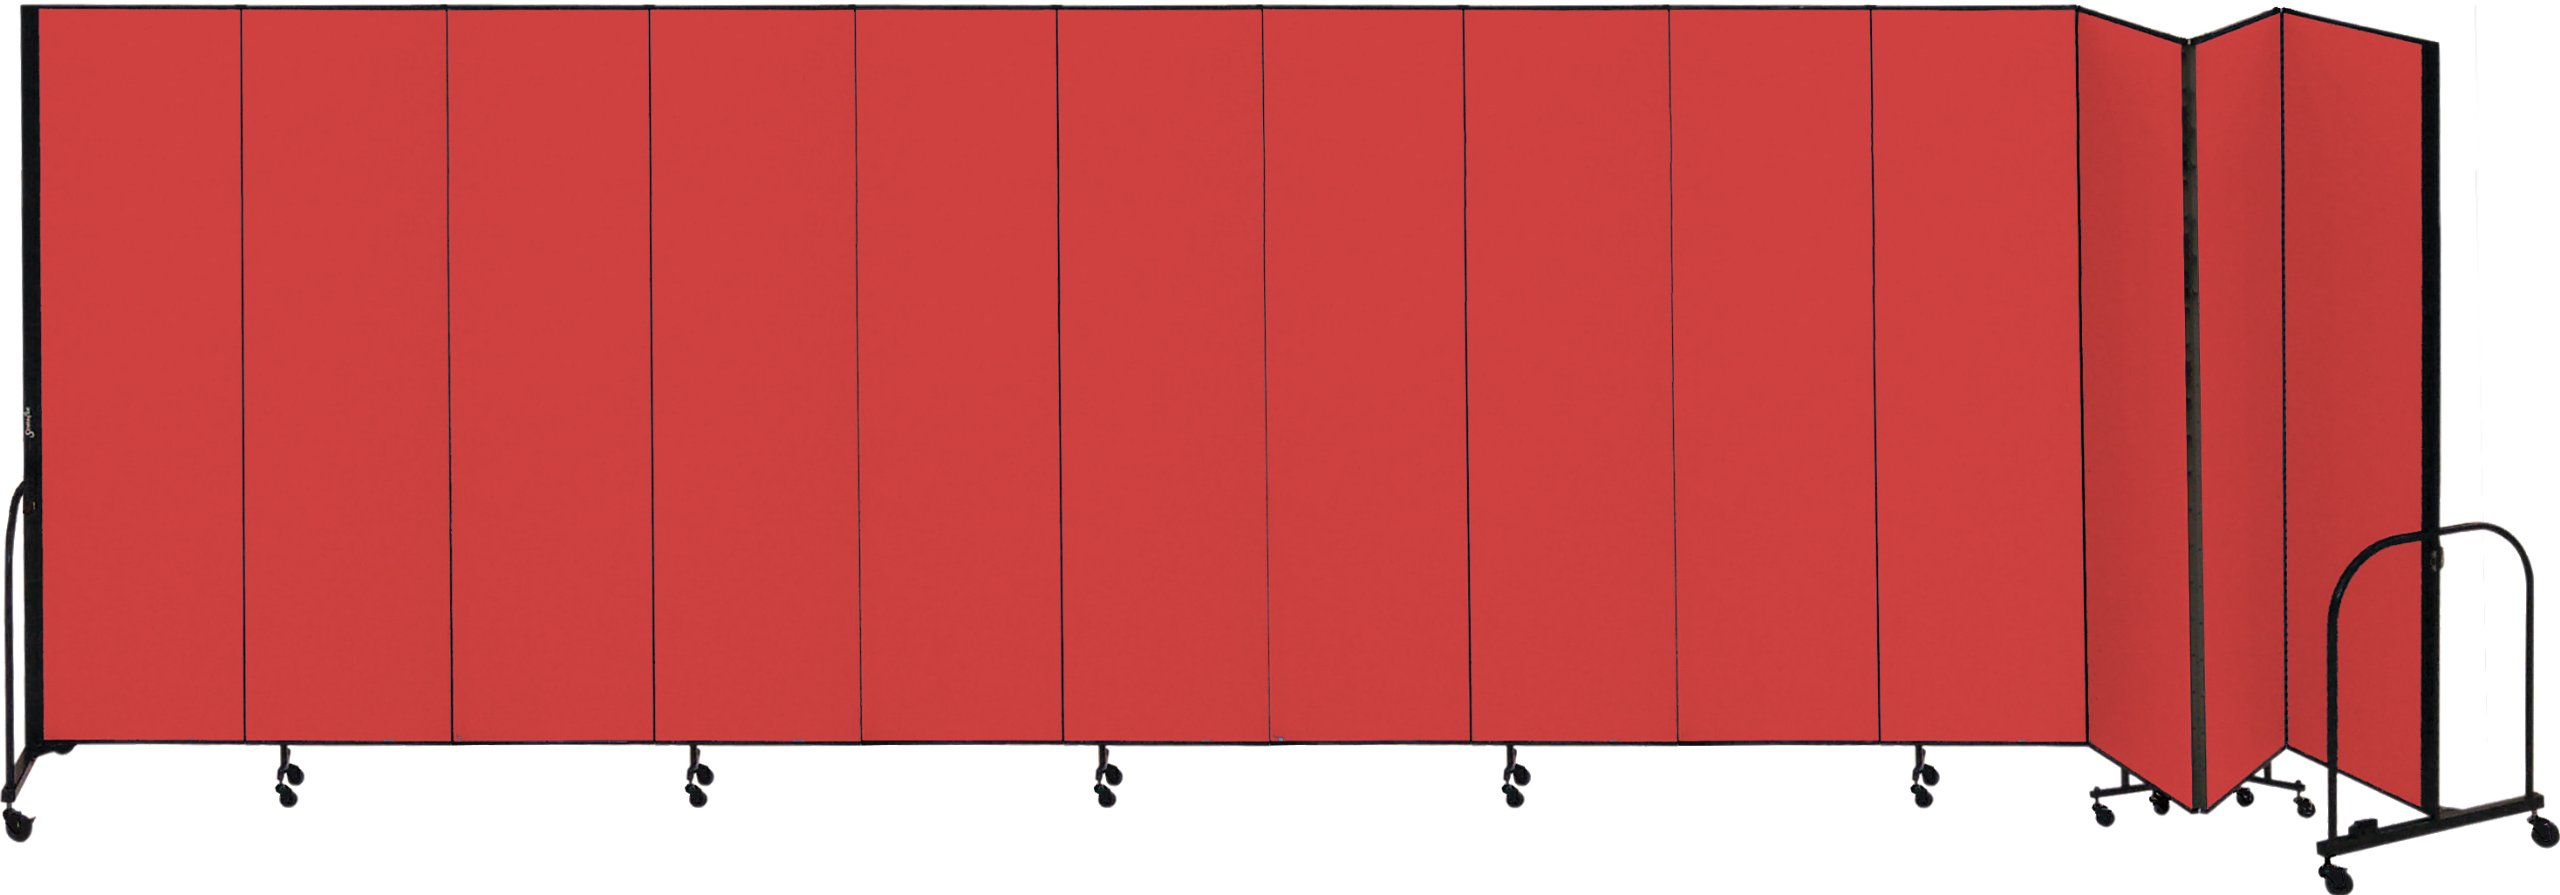 Screenflex Commercial Portable Room Divider (CFSL7413-DB) 7 Feet 4 Inches High by 24 Feet 1 Inches Long, Designer Lake Fabric